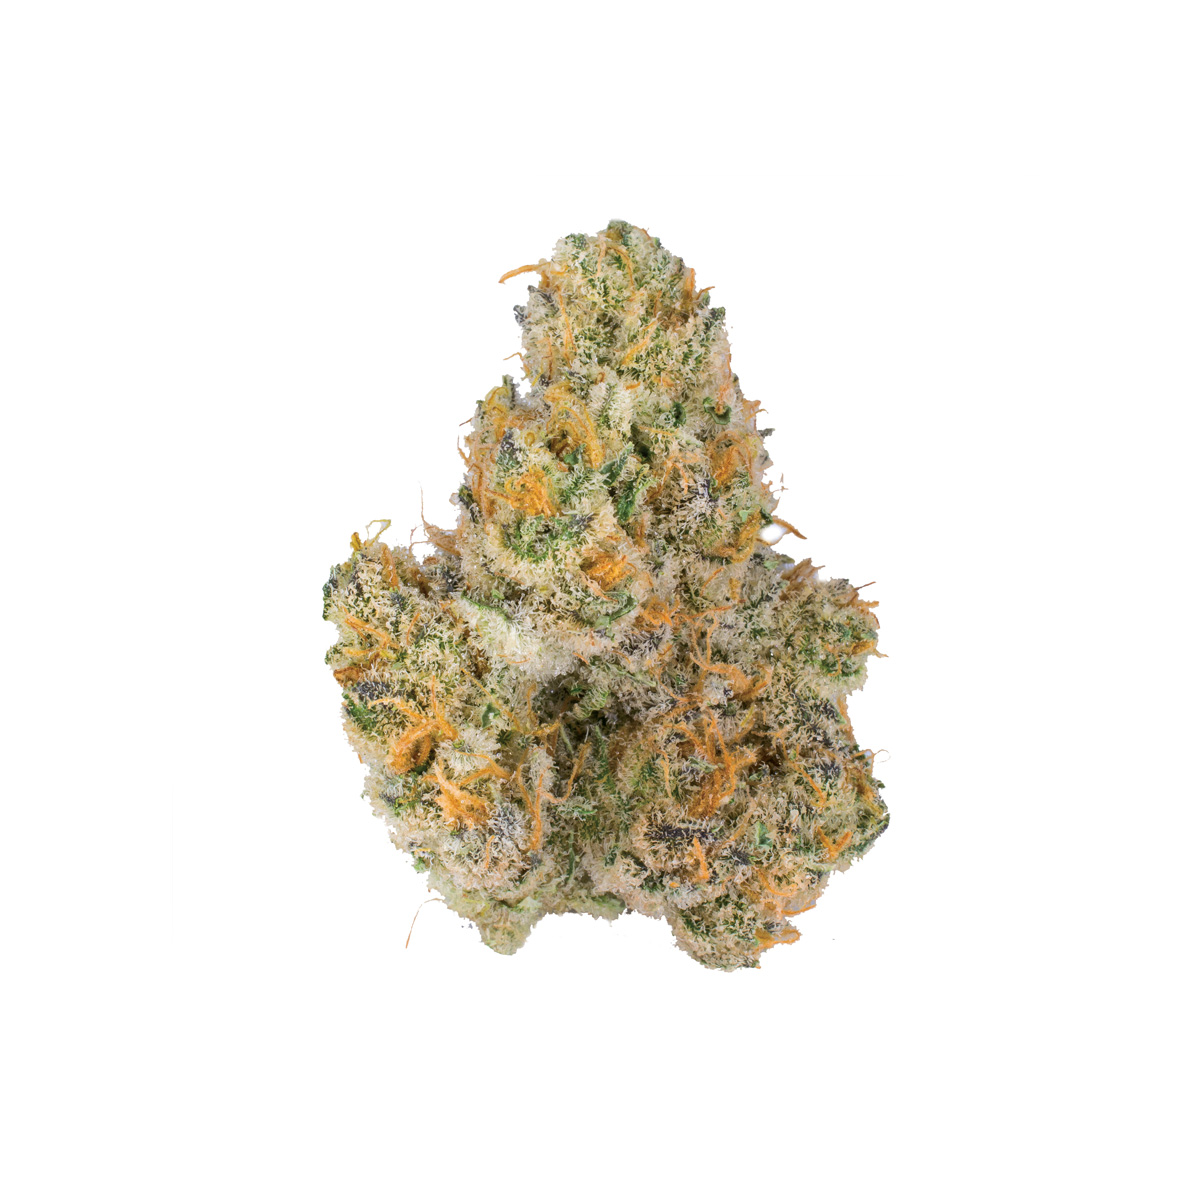 sundae driver - Indica Dominant Hybrid22.9% THC | .12% CBDSundae Driver is an indica-dominant cross between Grape Pie and Fruity Pebbles. Bred by Cannarado Genetics, Sundae Driver tastes like creamy marshmallows with sharp notes of chocolate syrup. Sundae Driver will relax you with a strong body high.